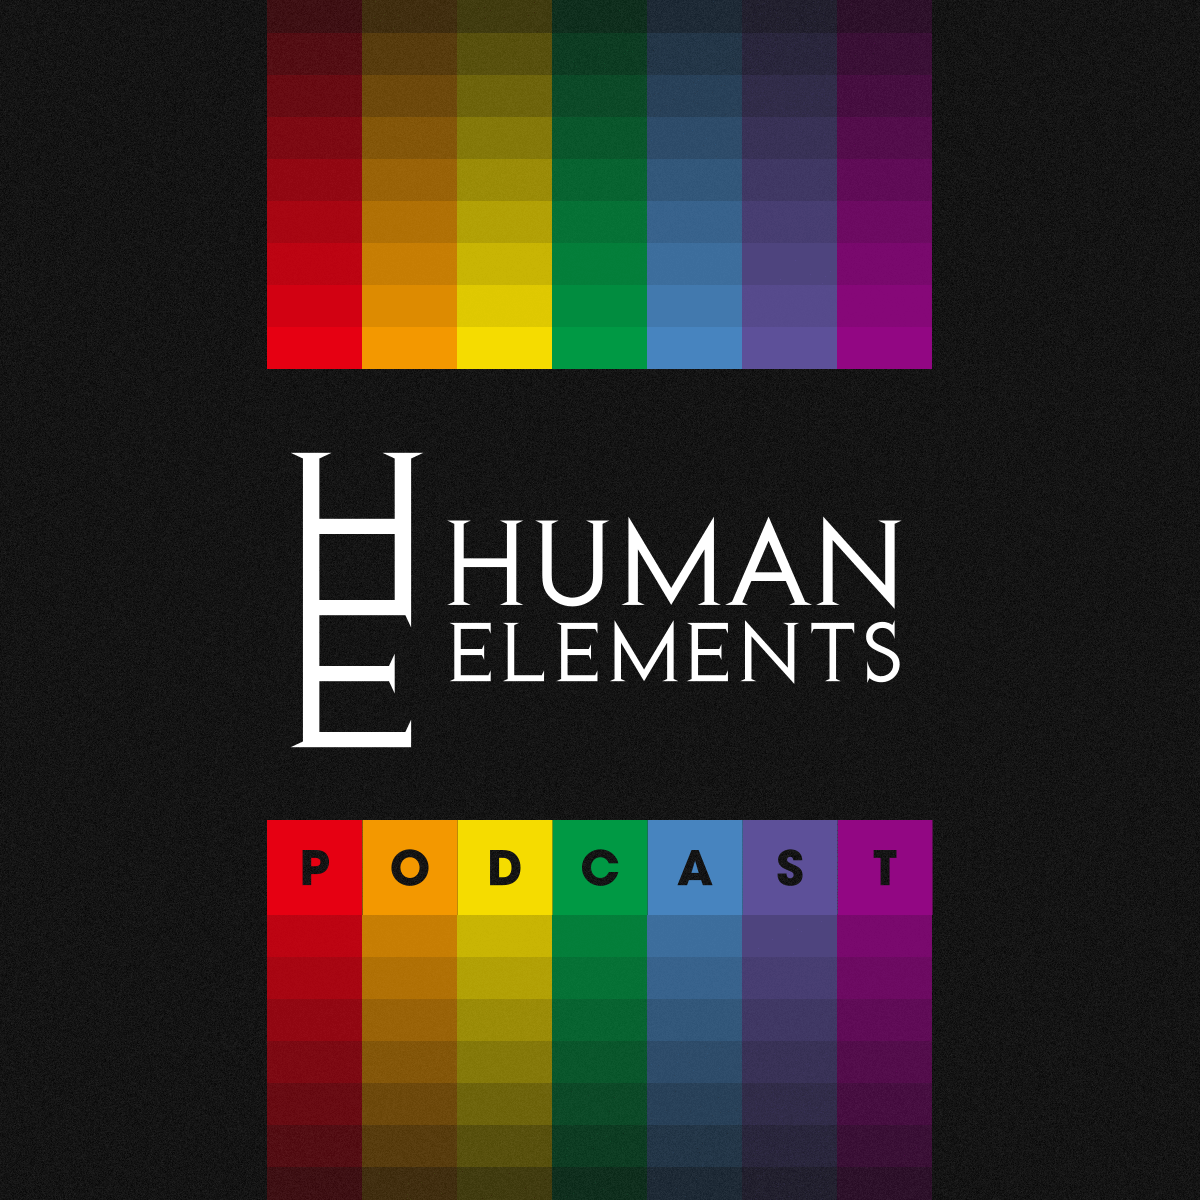 Human Elements Podcast